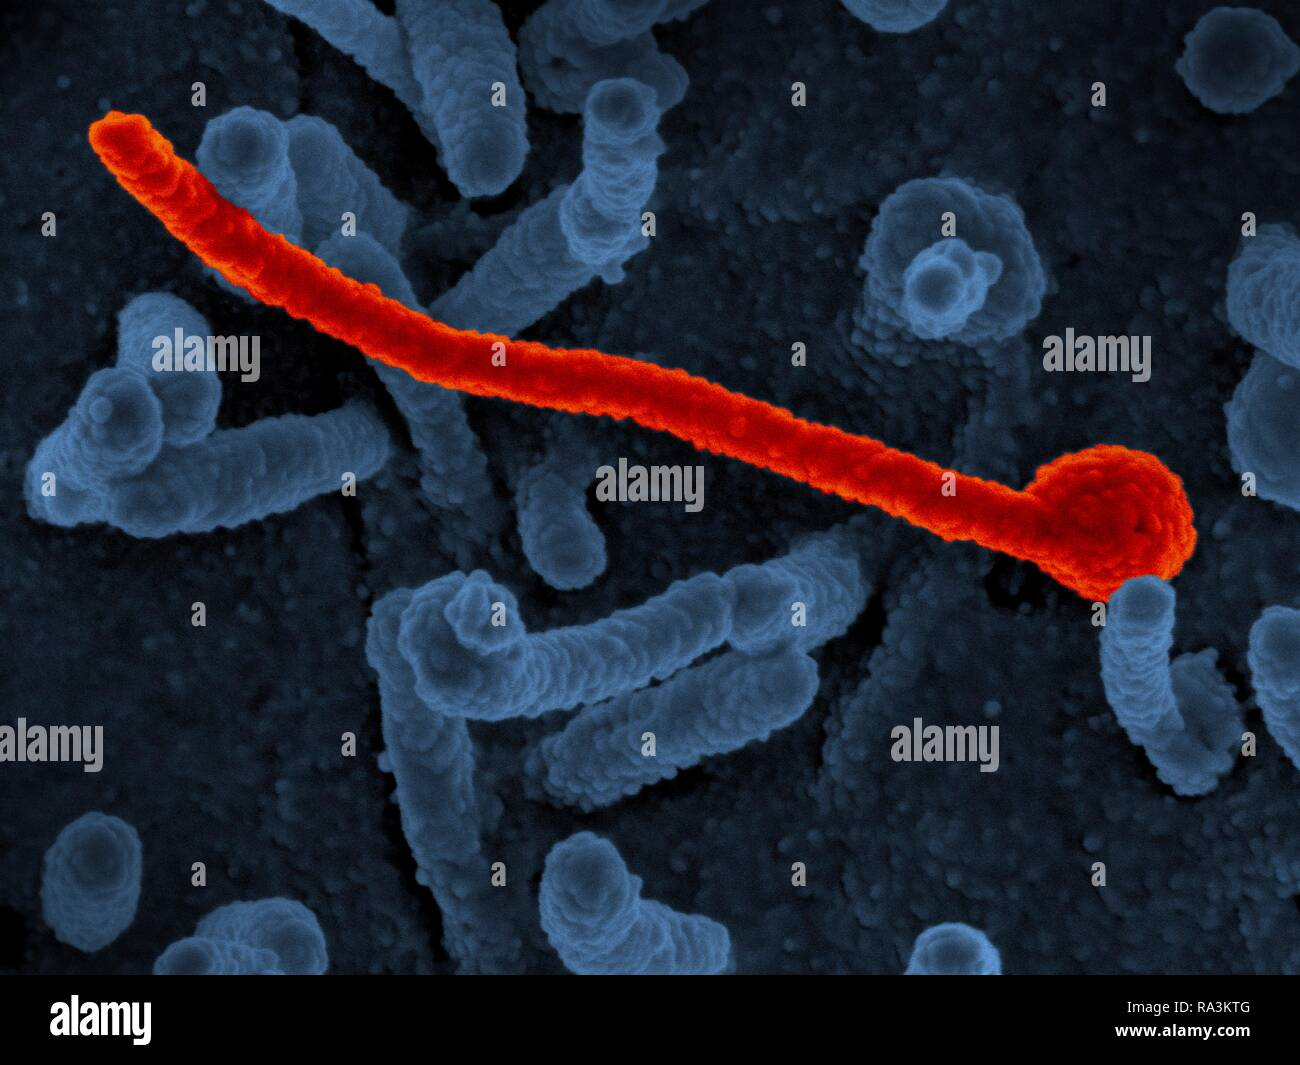 A scanning electron micrograph of Ebola virus Makona (in red) from the West African epidemic shown on the surface of Vero cells (blue). Early during the recent Ebola epidemic in West Africa, scientists speculated that the genetic diversity of the circulating Makona strain of virus (EBOV-Makona) would result in more severe disease and more transmissibility than prior strains. However, using two different animal models, National Institutes of Health scientists have determined that certain mutations stabilized early during the epidemic and did not alter Ebola disease presentation or outcome. - Stock Image